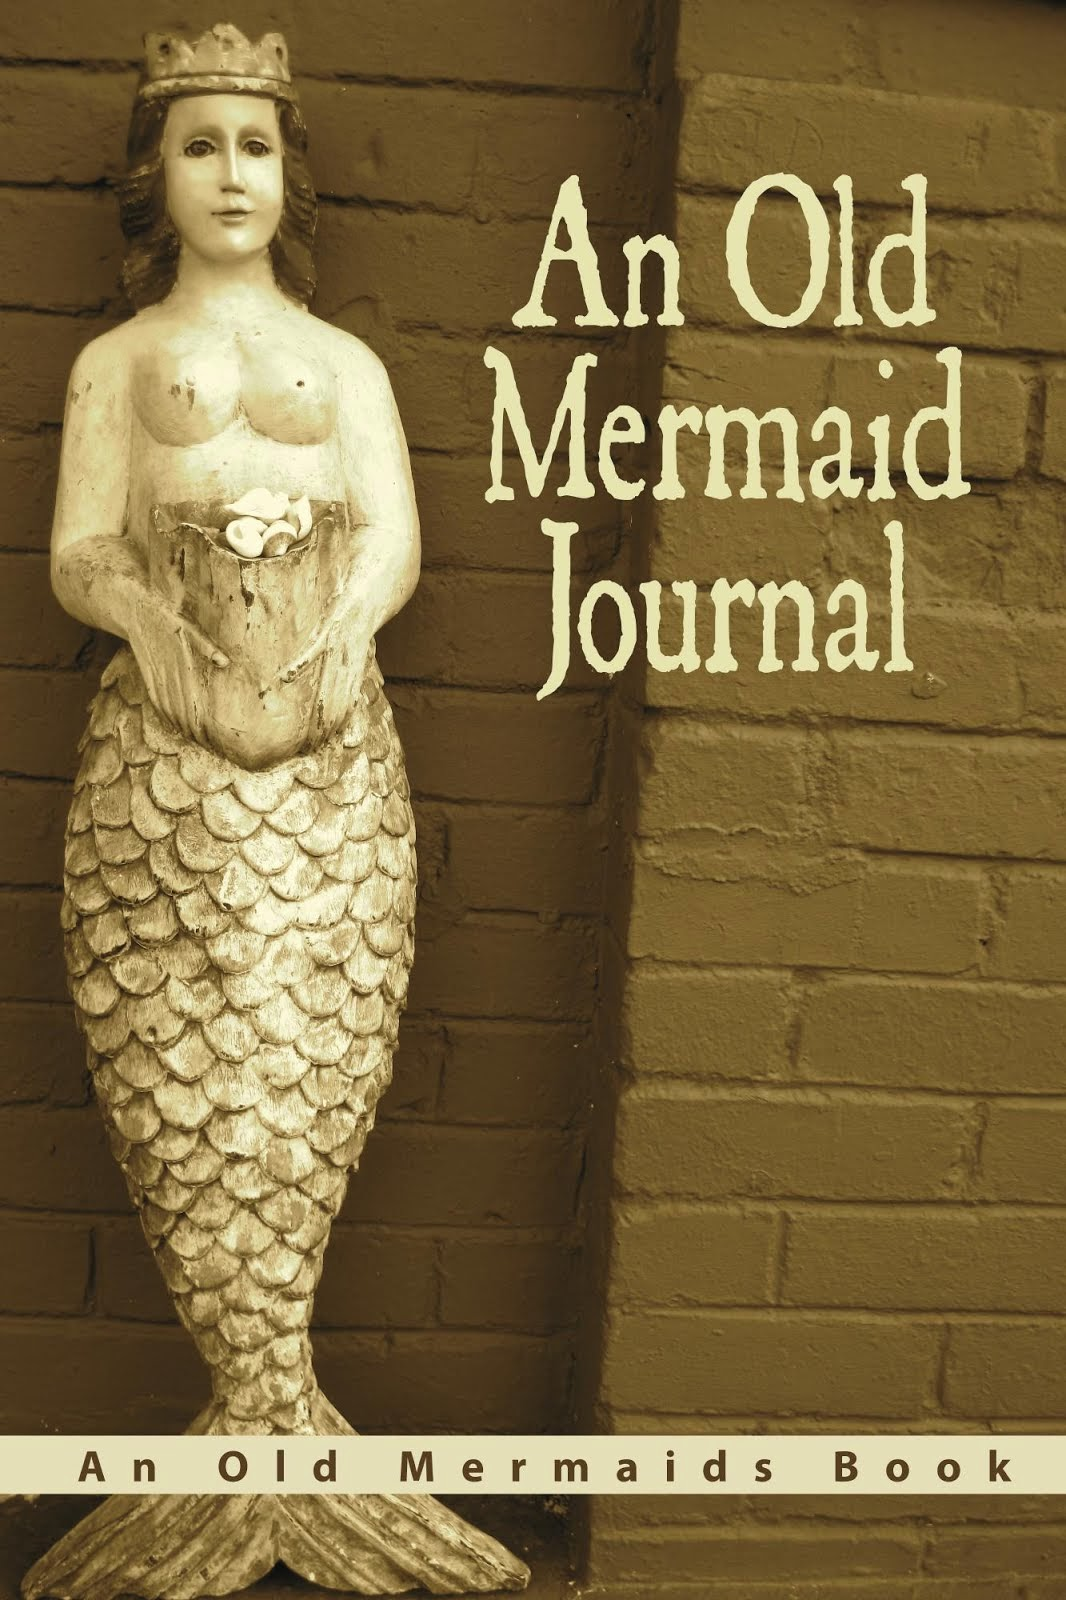 An Old Mermaid Journal